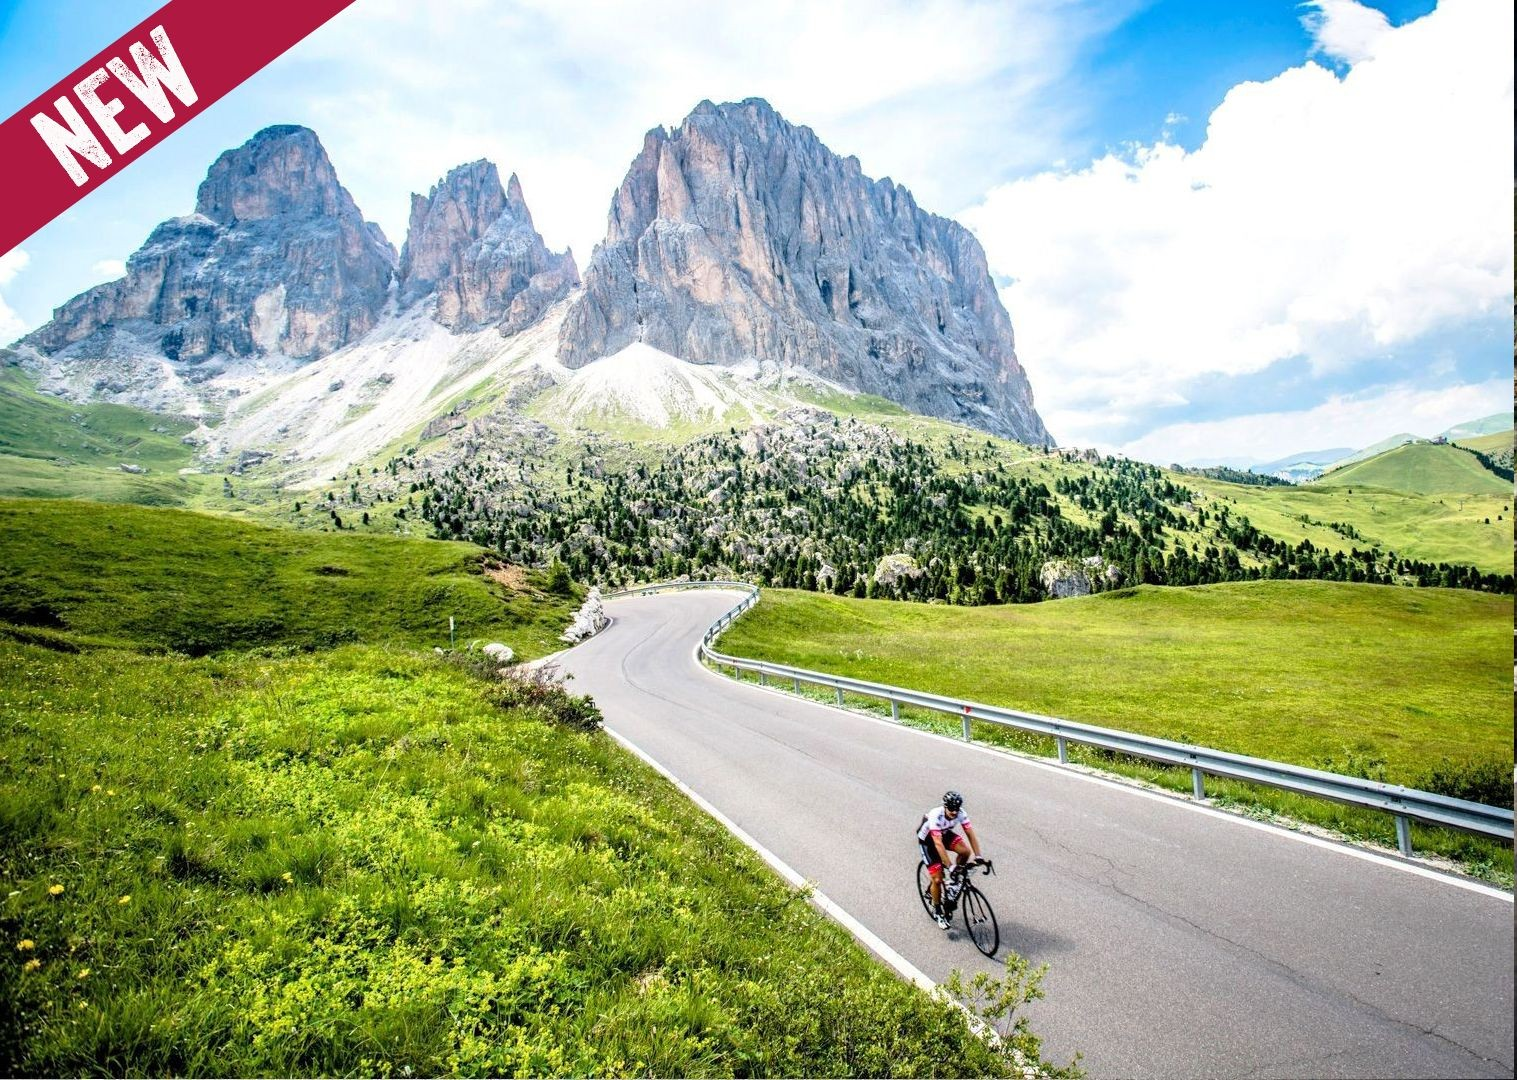 dolomites-guided-road-cycling-holiday-in-italy.jpg - Italy - Dolomiti Discoverer - Guided Road Cycling Holiday - Italia Road Cycling